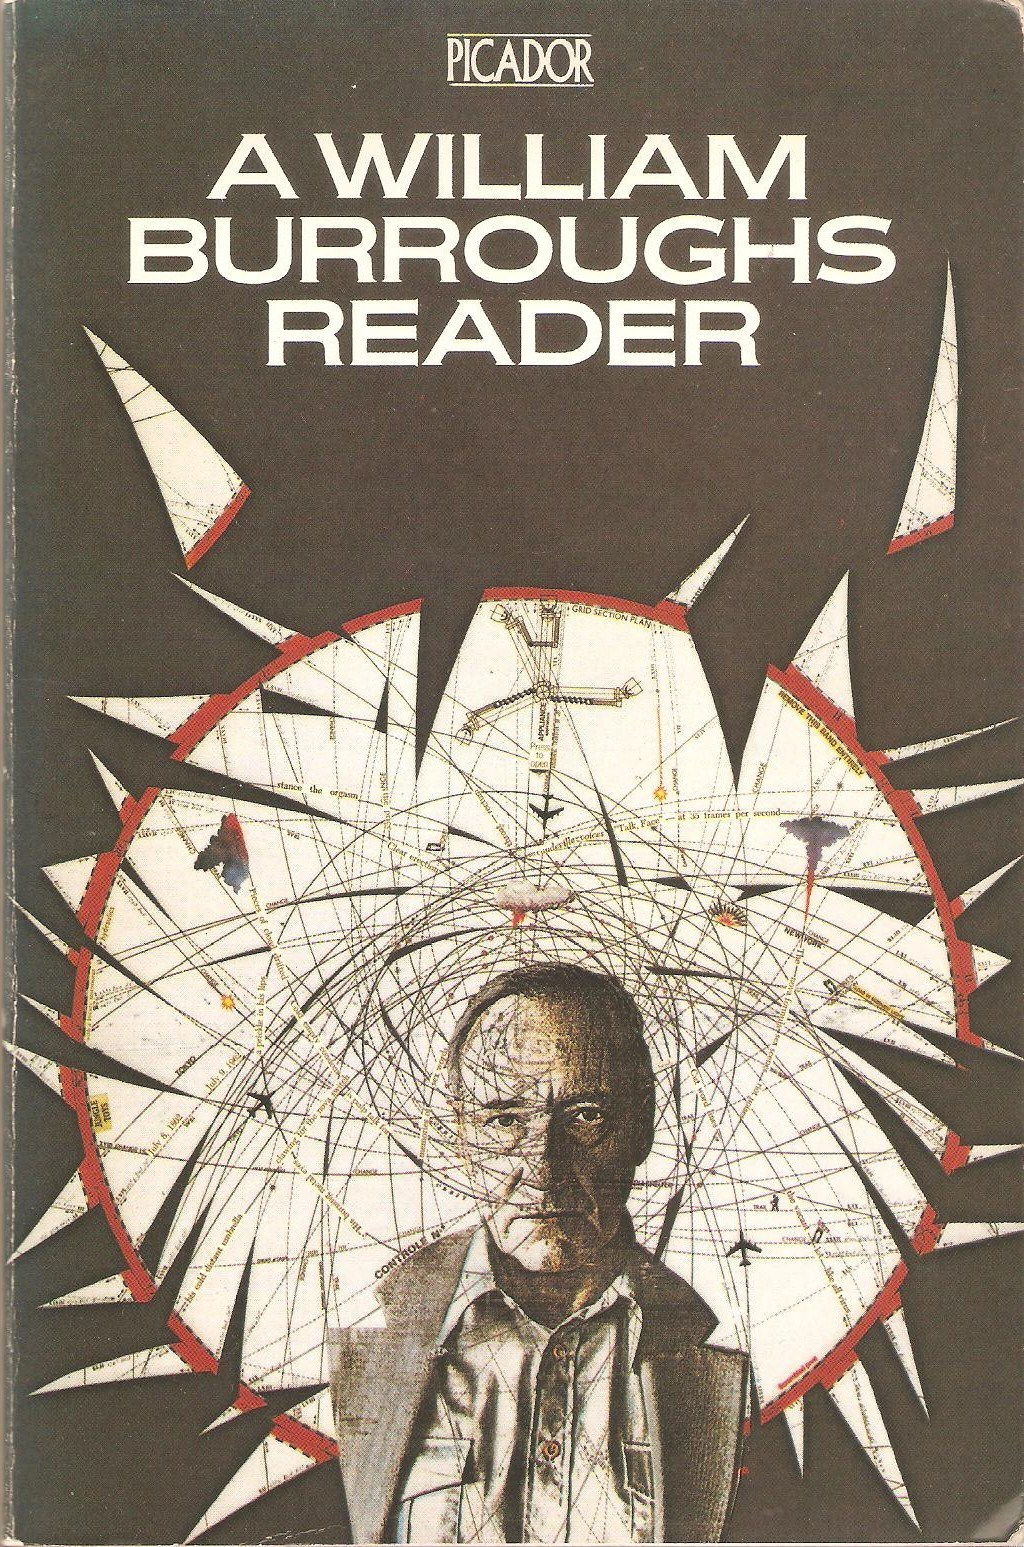 davidcorvine:  A William Burroughs Reader.